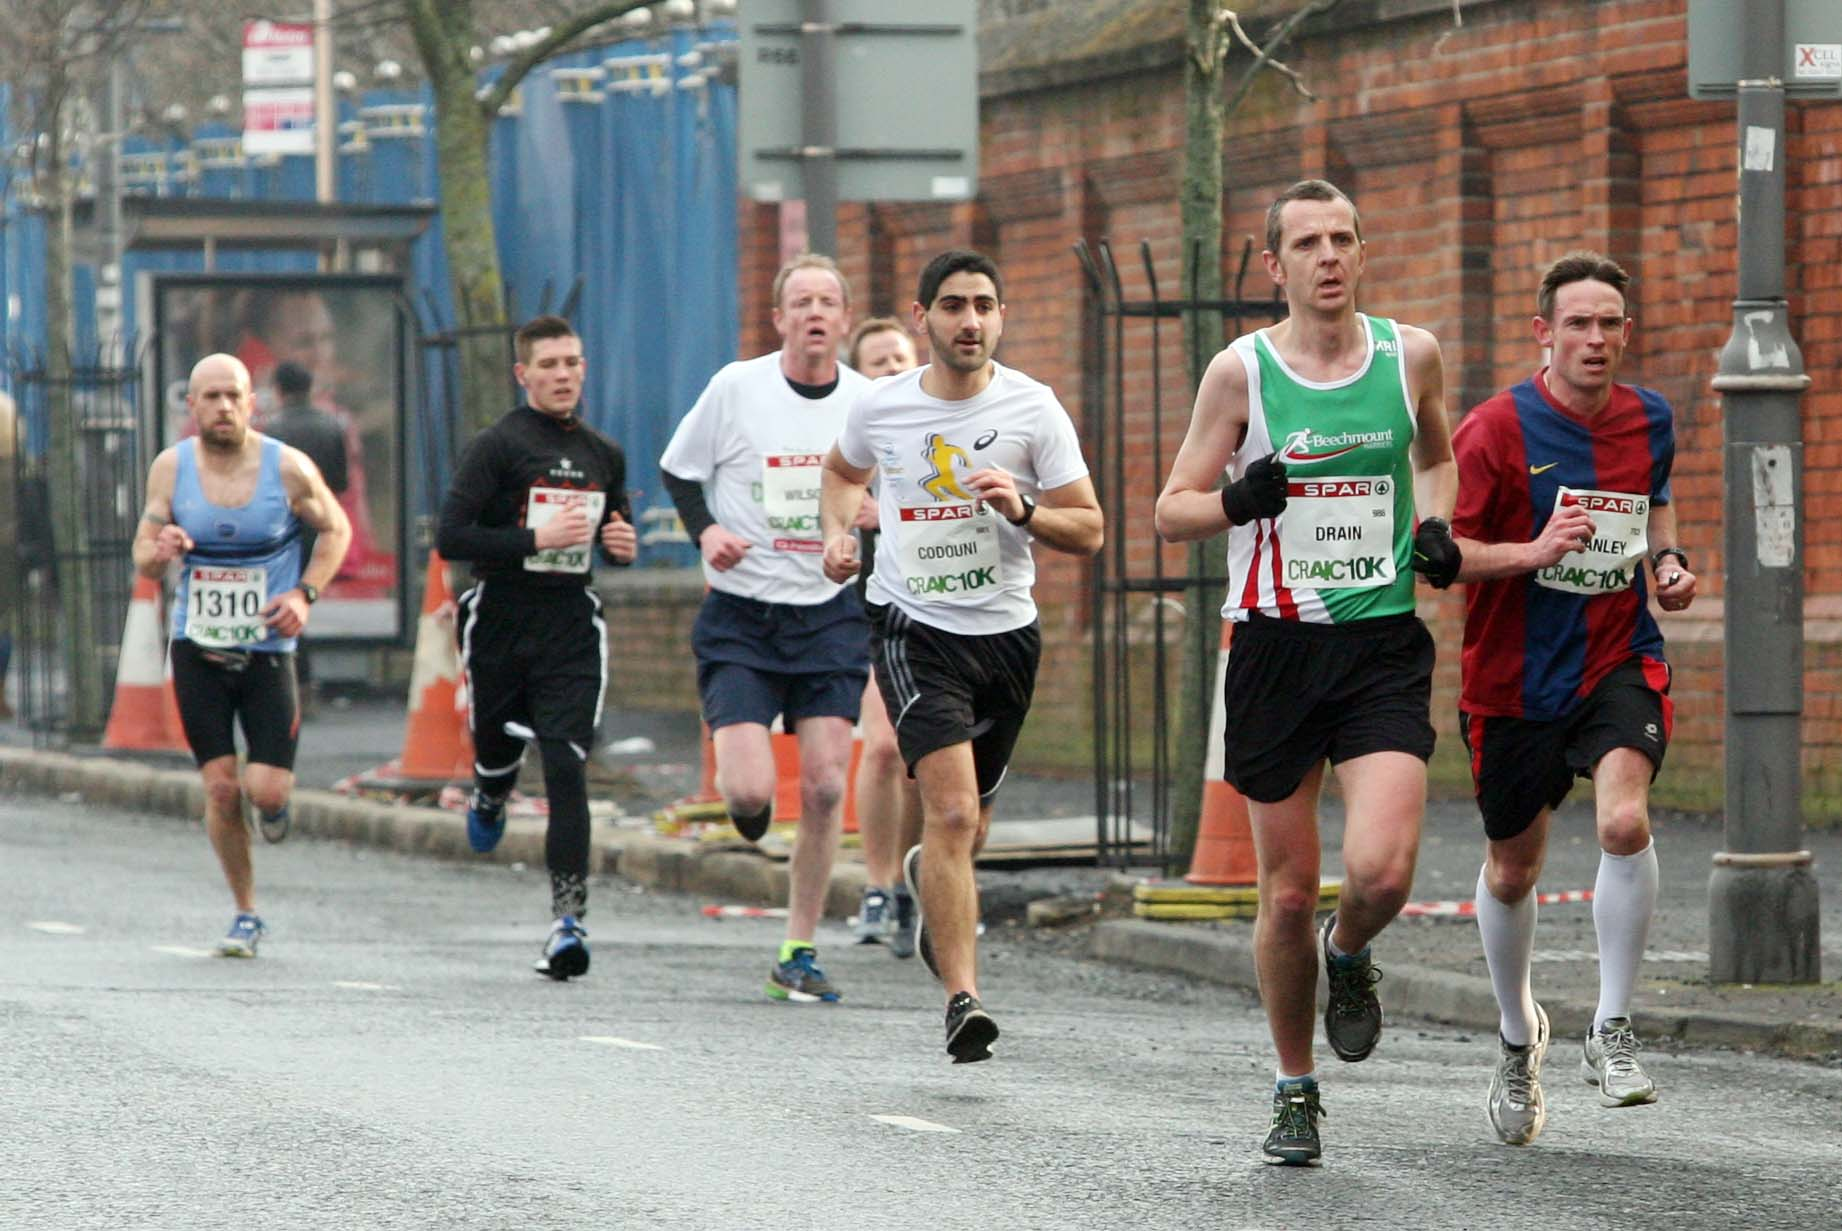 Tuesday 17-3-2015St Patrick's DaySPAR Craic 10k BelfastRace leaders make their way along Belfast's Falls RoadSparCraic10K170315FP002